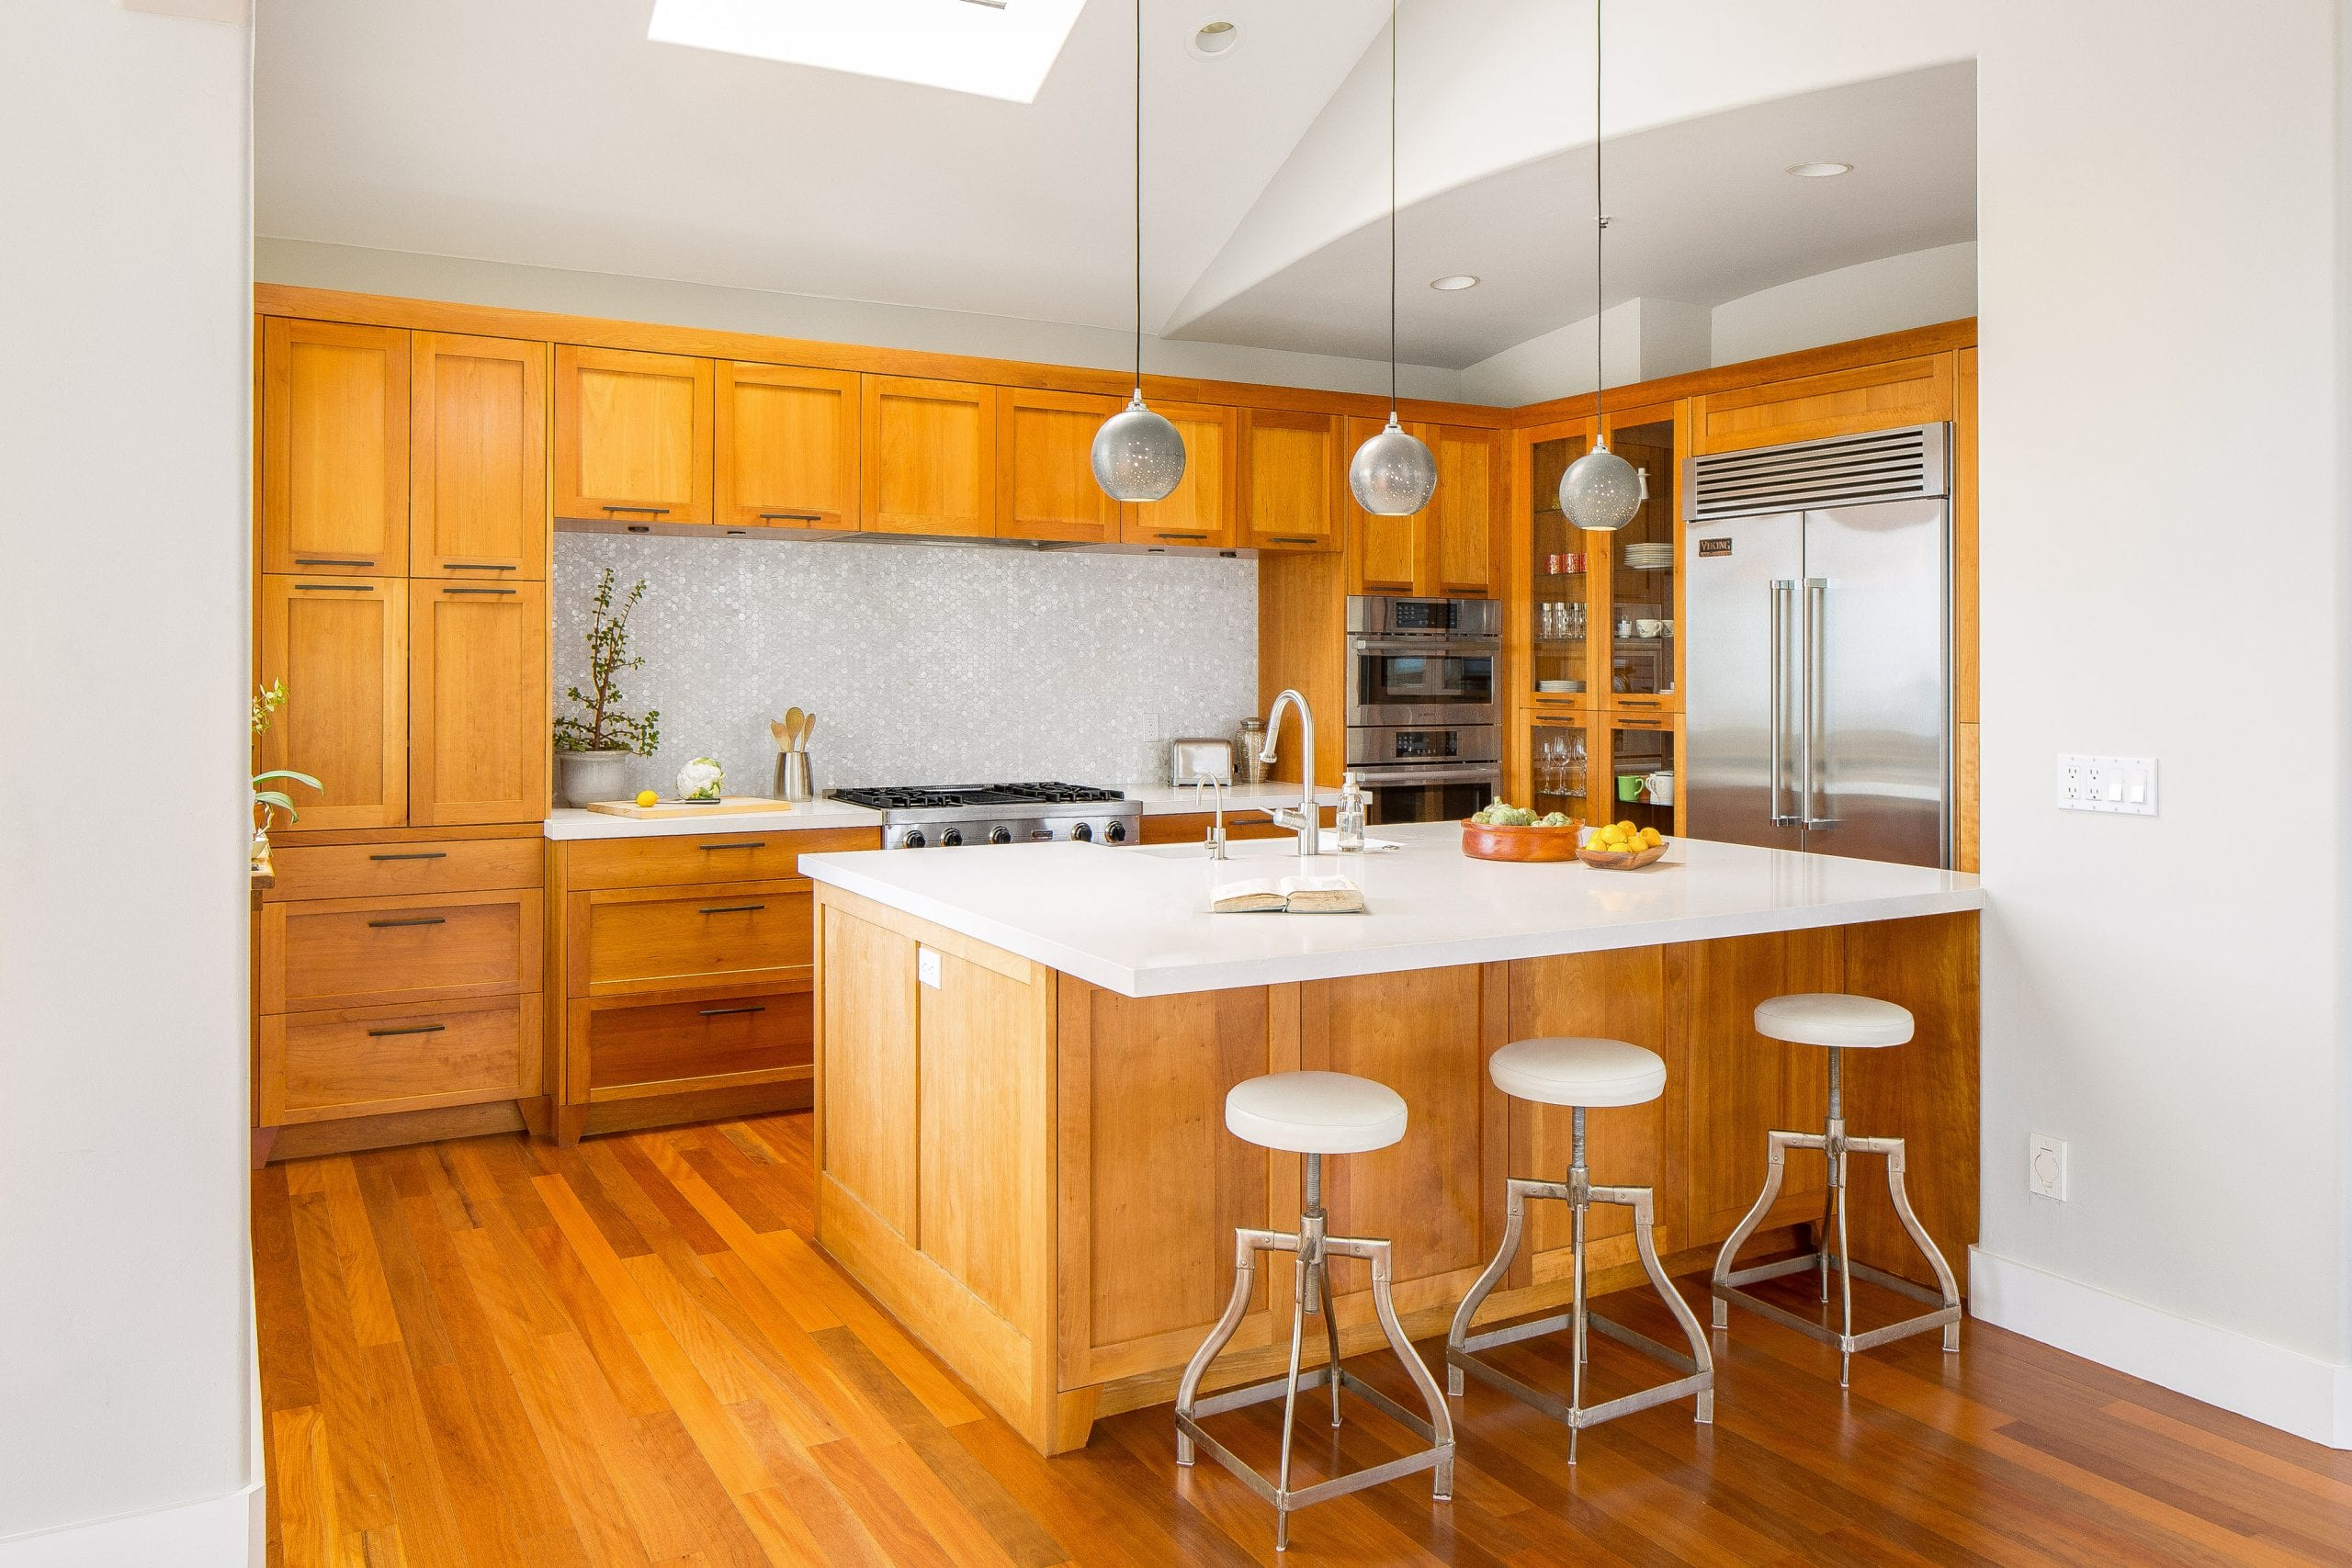 Kitchen remodel featuring matching hardwood cabinets and flooring